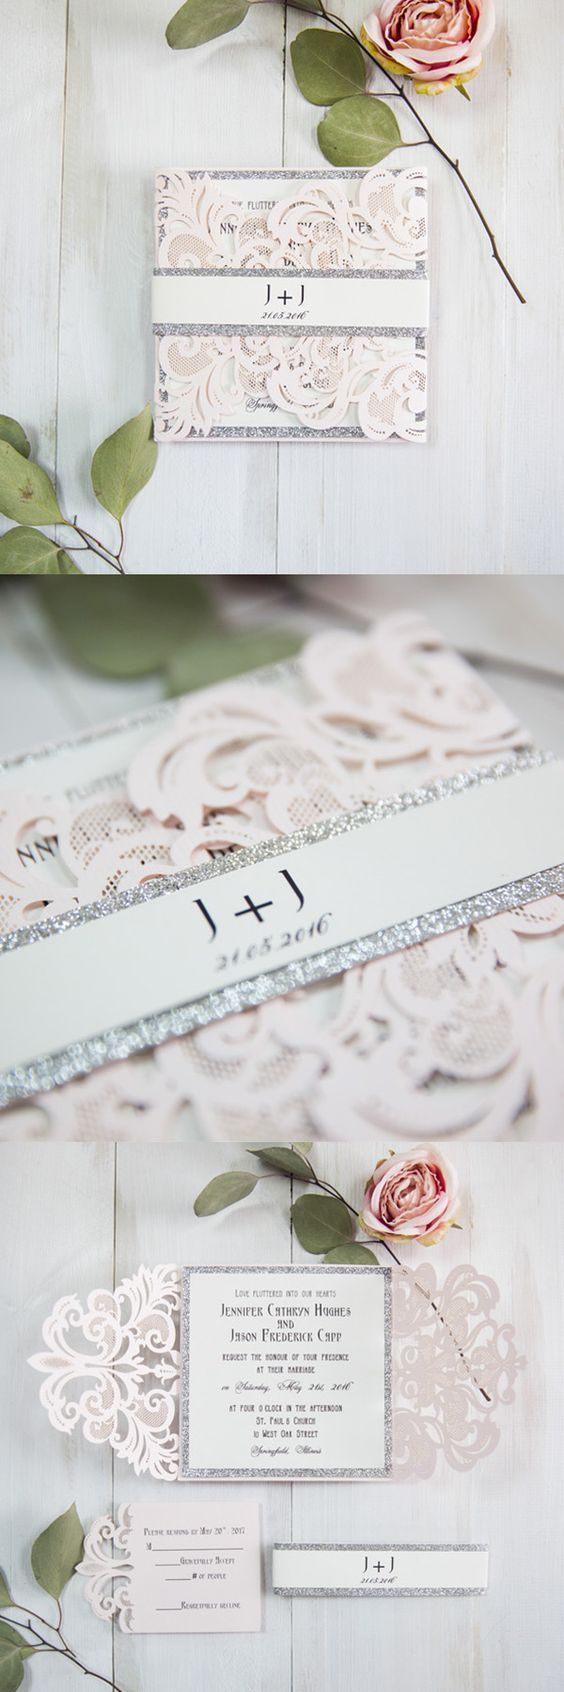 handmade wedding cards ireland%0A silver glittered blush laser cut wedding invites EWTS